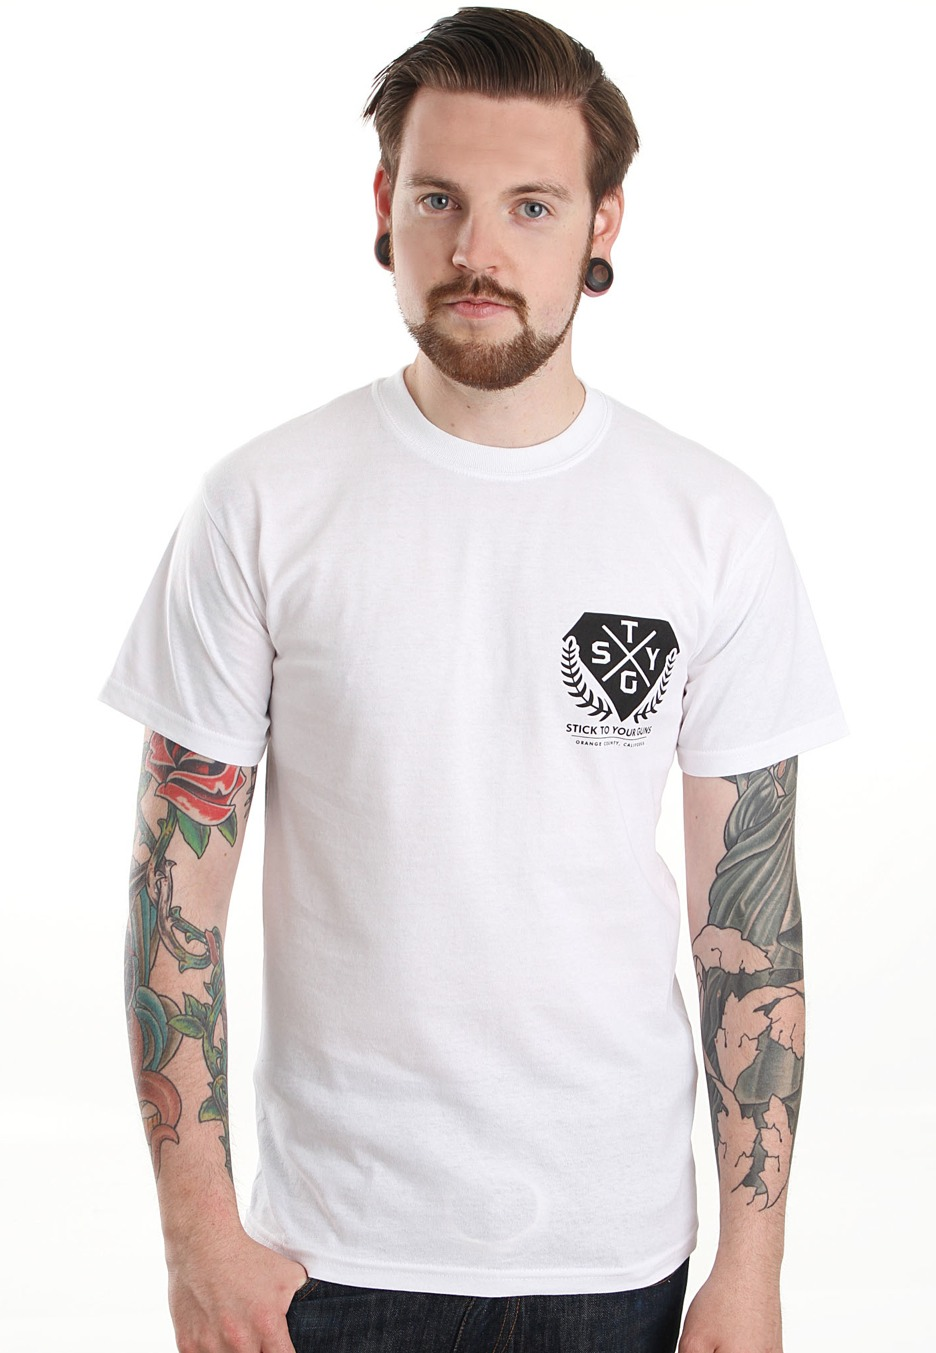 Stick To Your Guns - All Talk No Walk White - T-Shirt Merch Store - Impericon.com UK